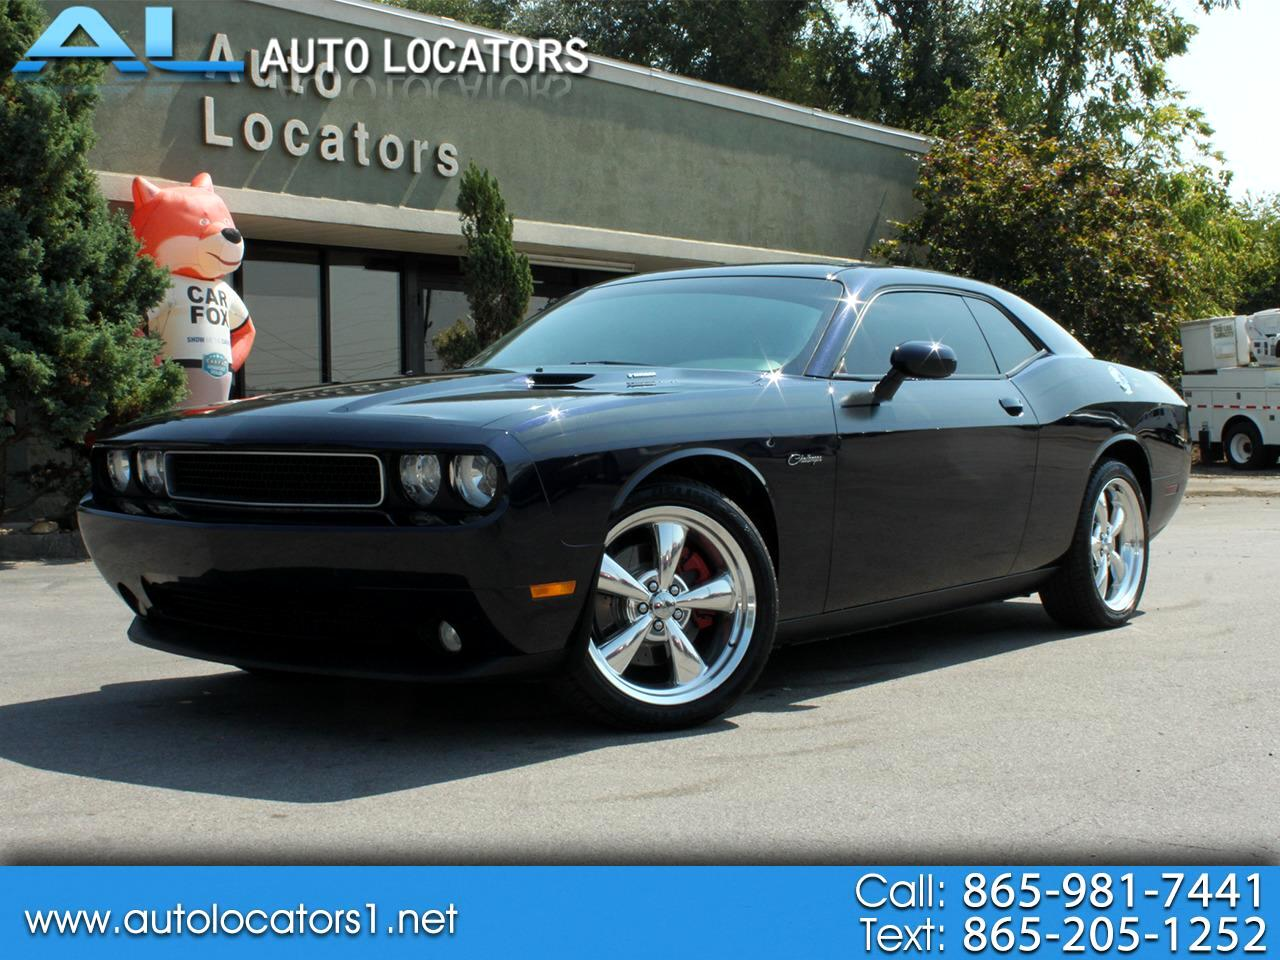 Dodge Challenger R/T Coupe 2011